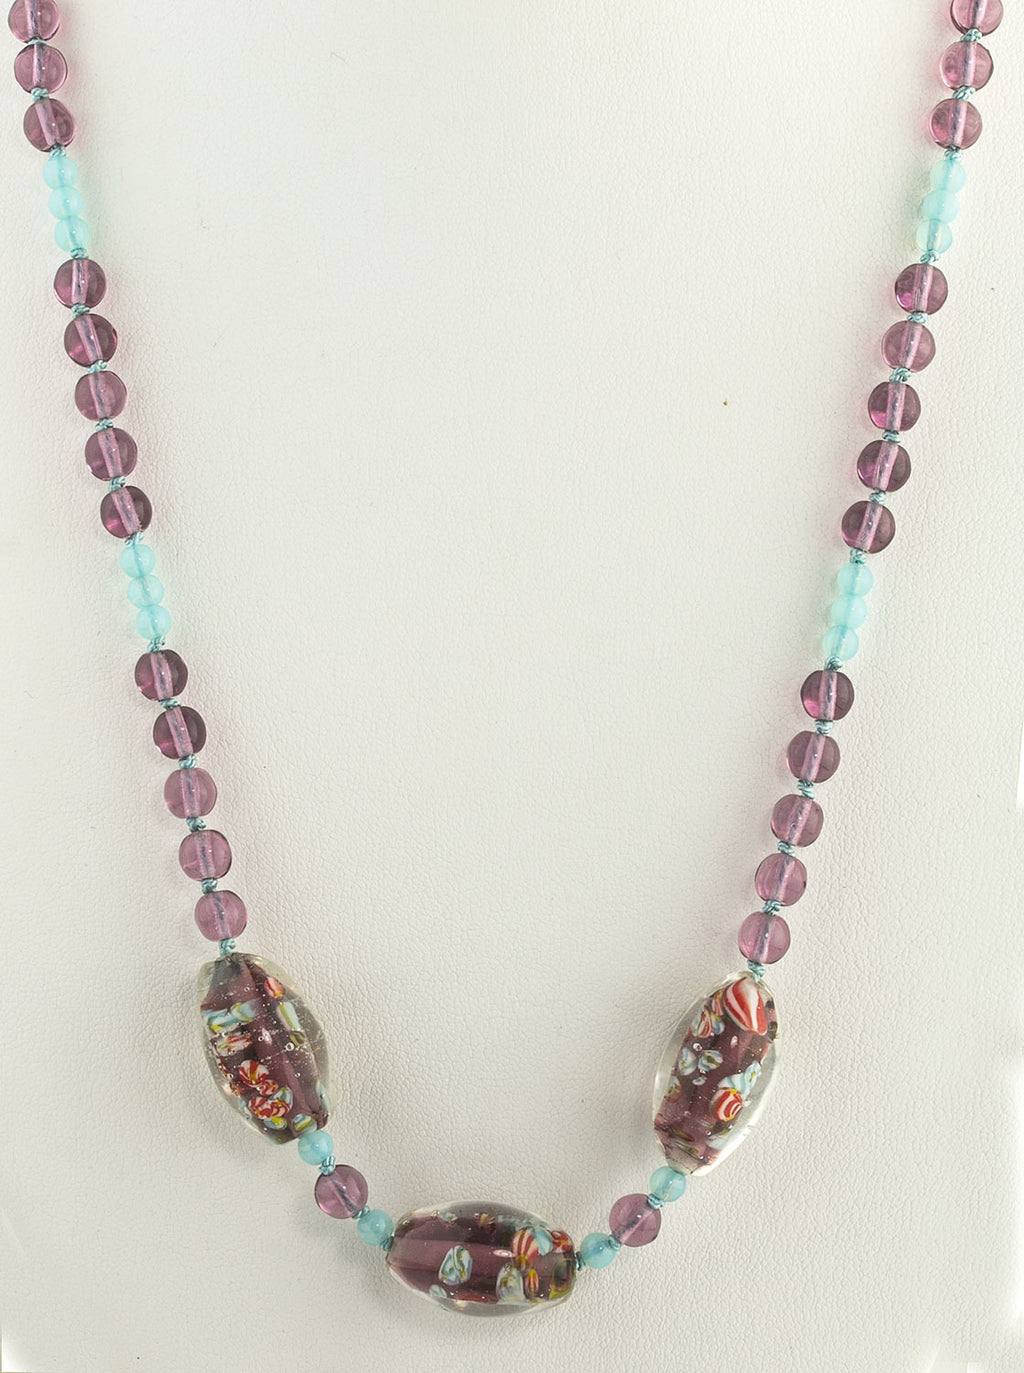 Vintage beaded necklace with Venetian confetti glass focal beads. nlbd1258